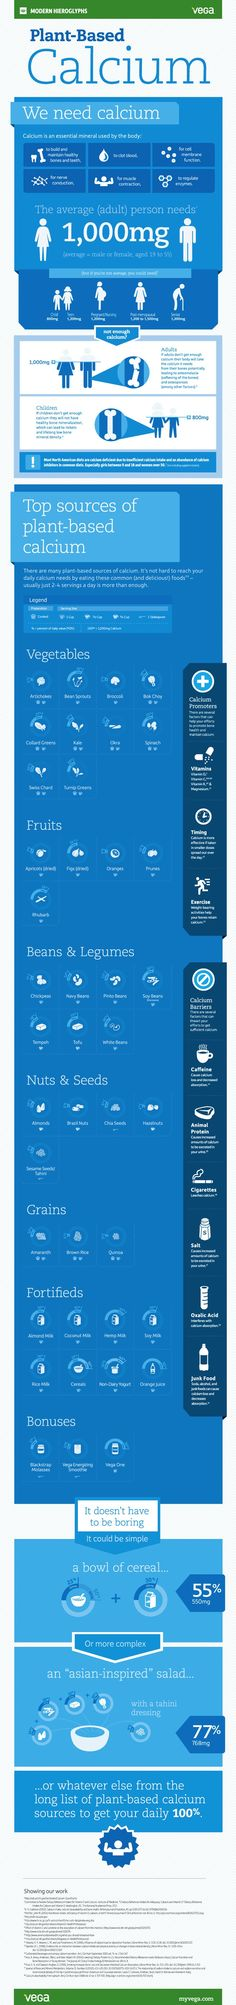 Top Sources of Plant-Based Calcium (Infographic)